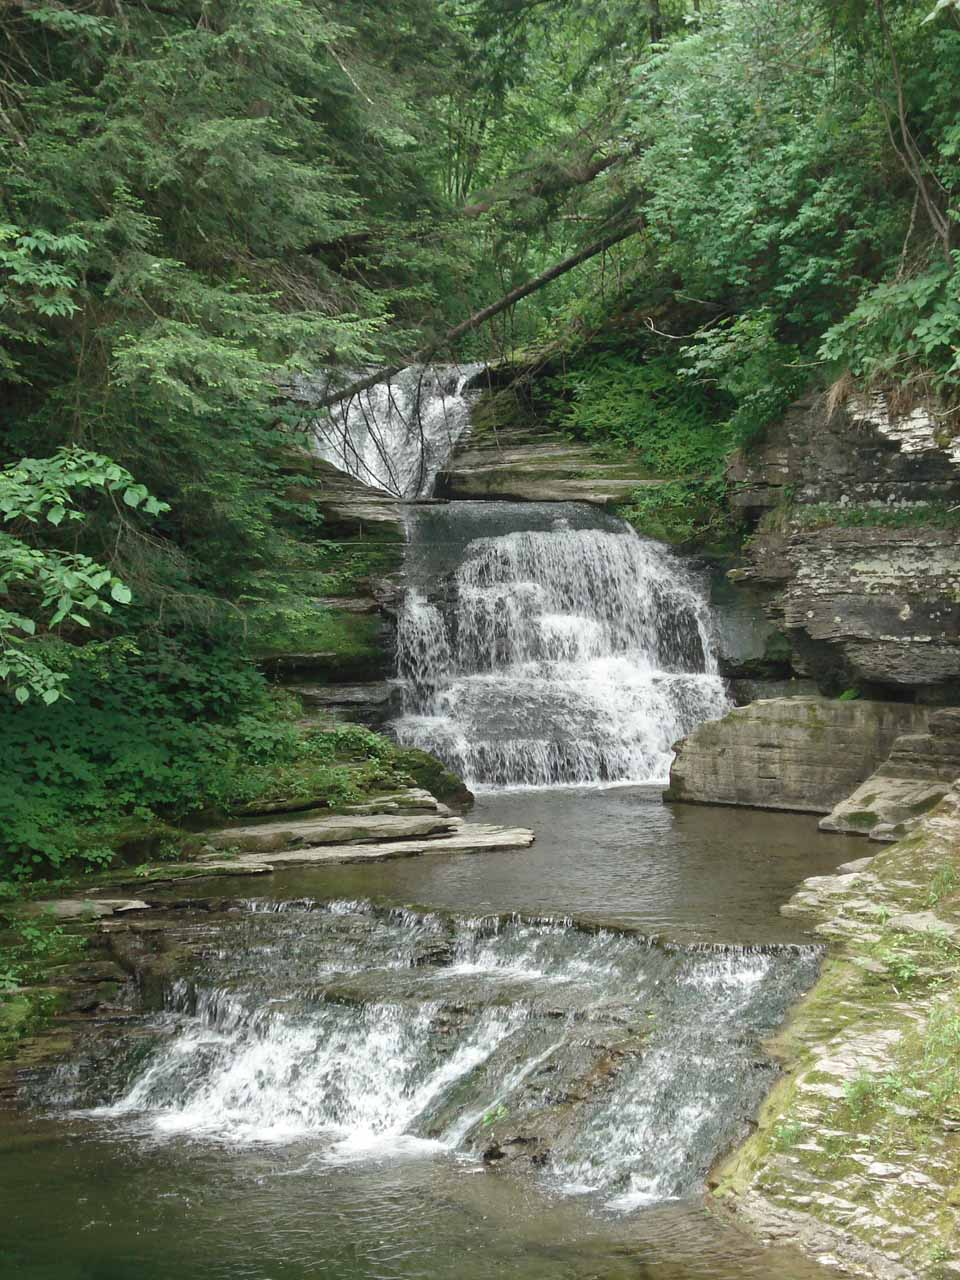 Triple cascades in the scenic Enfield Glen